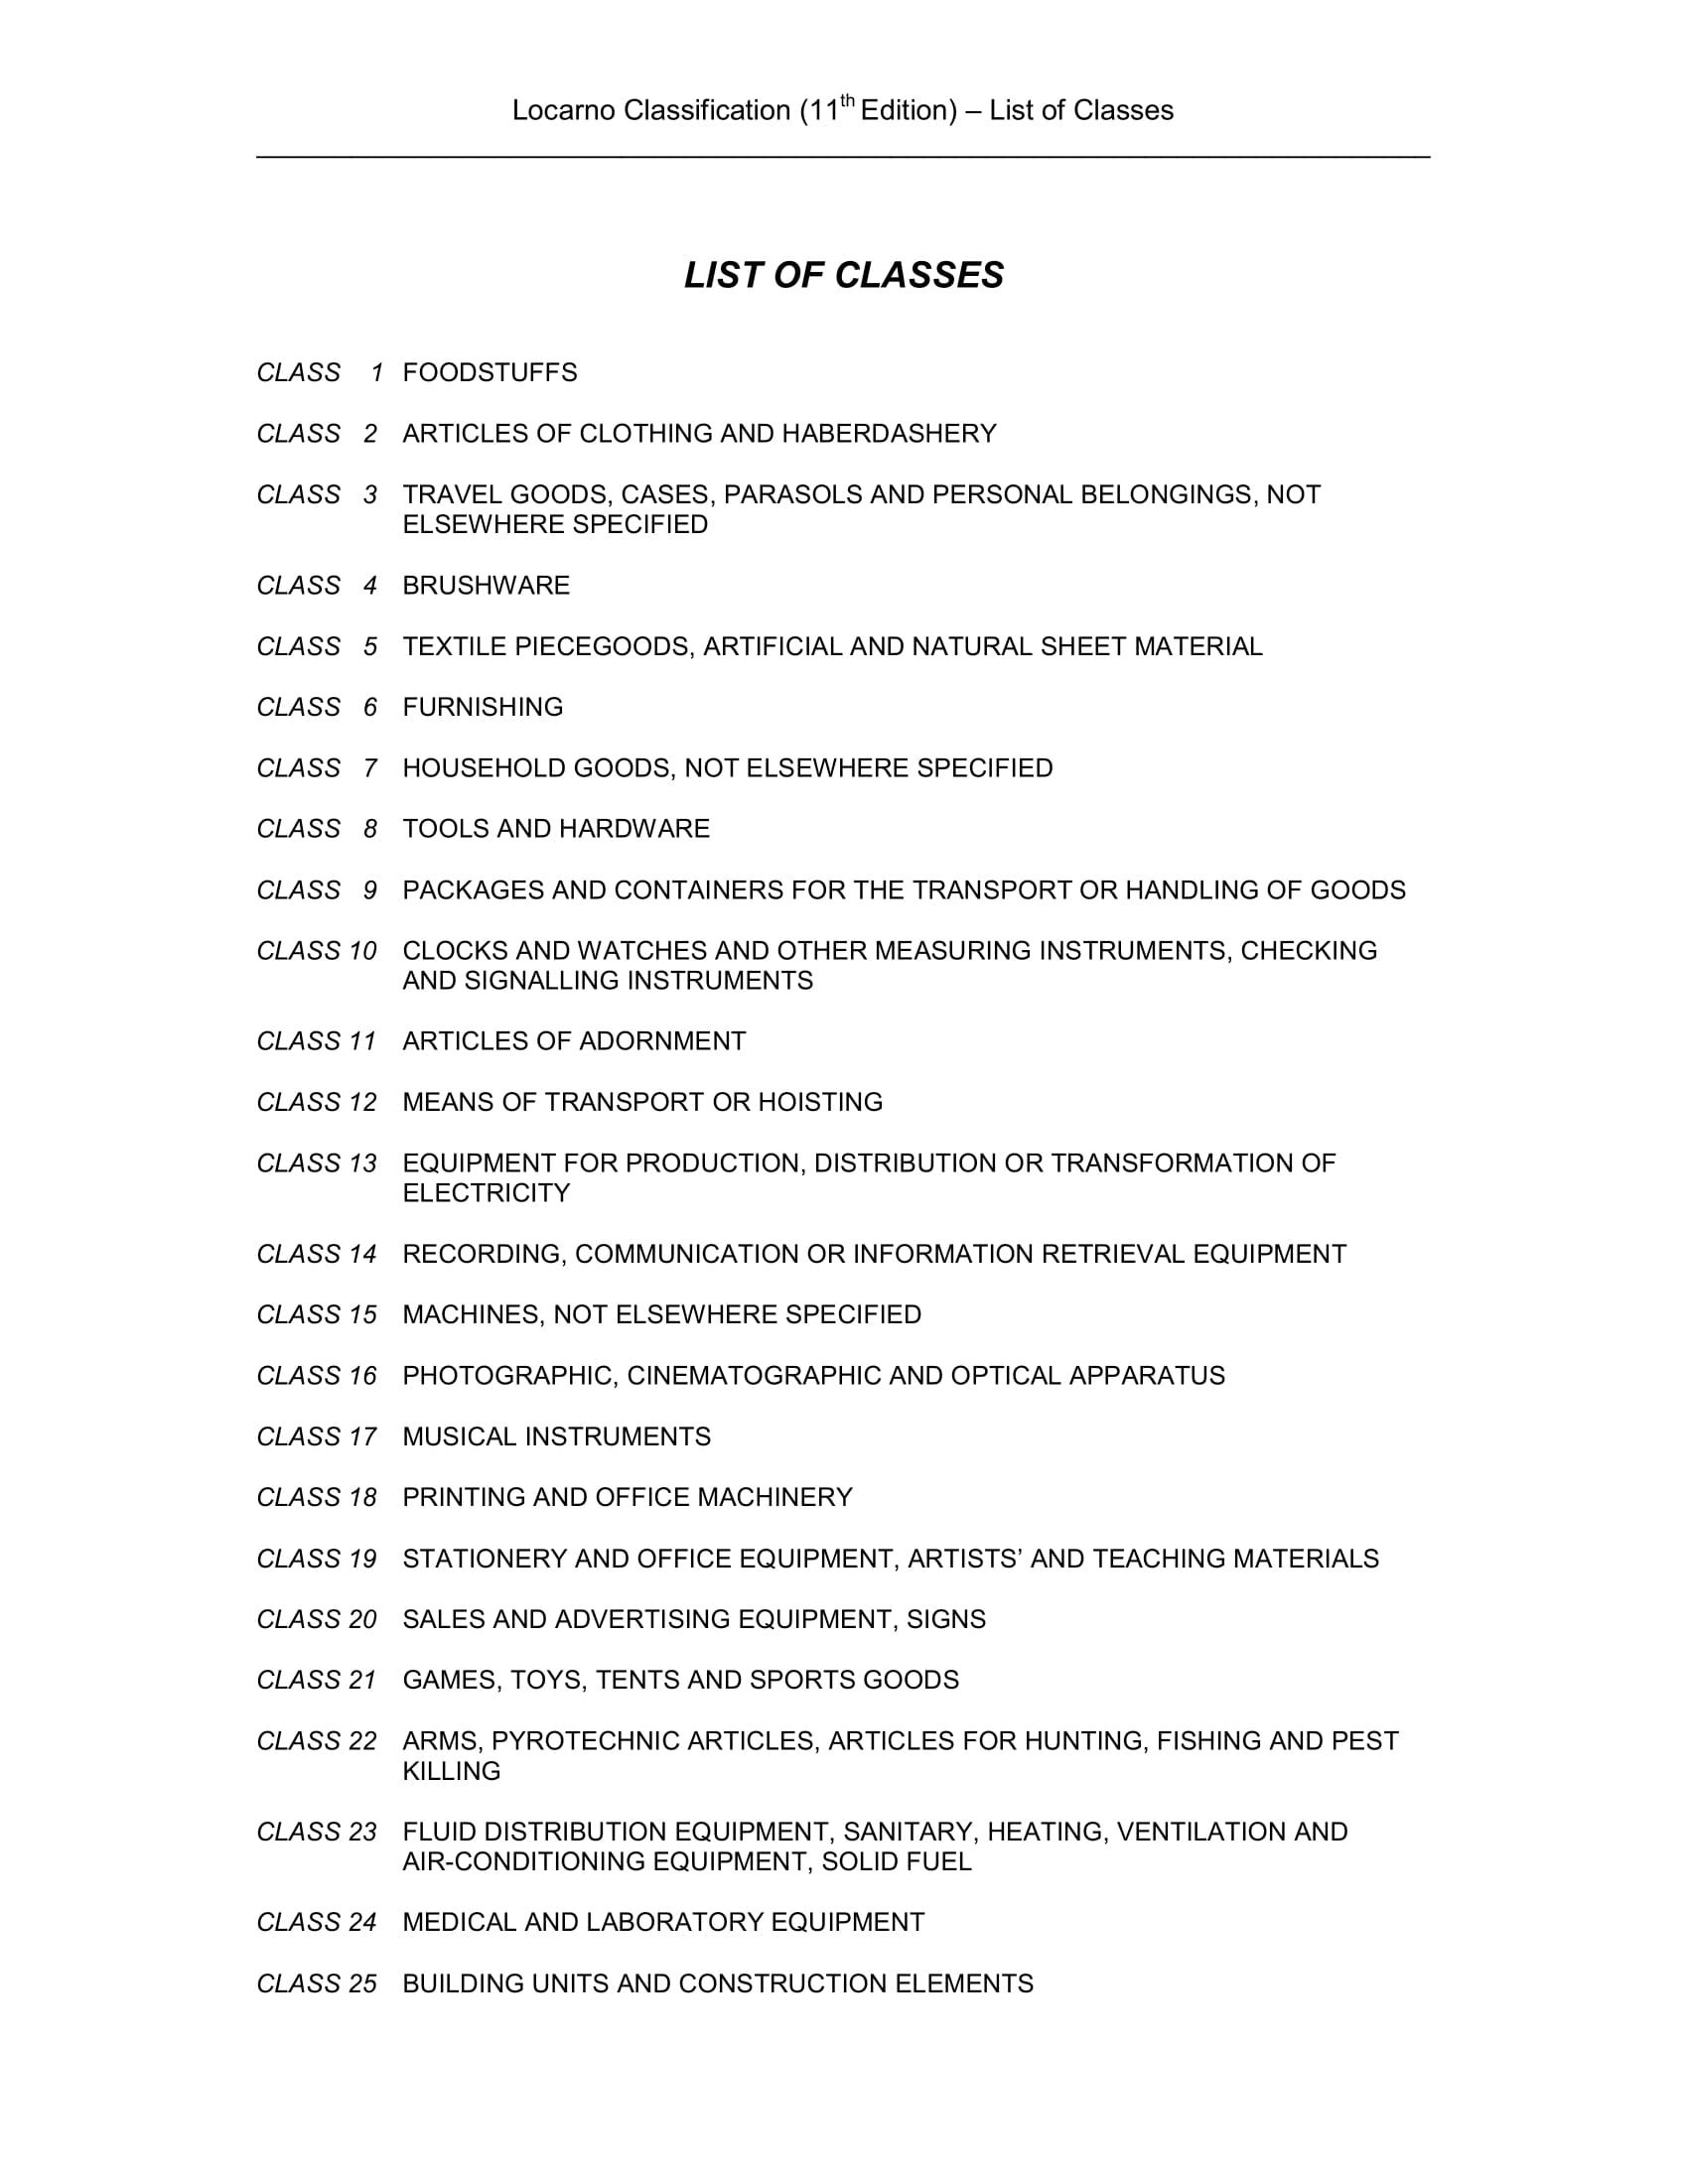 list of classes example